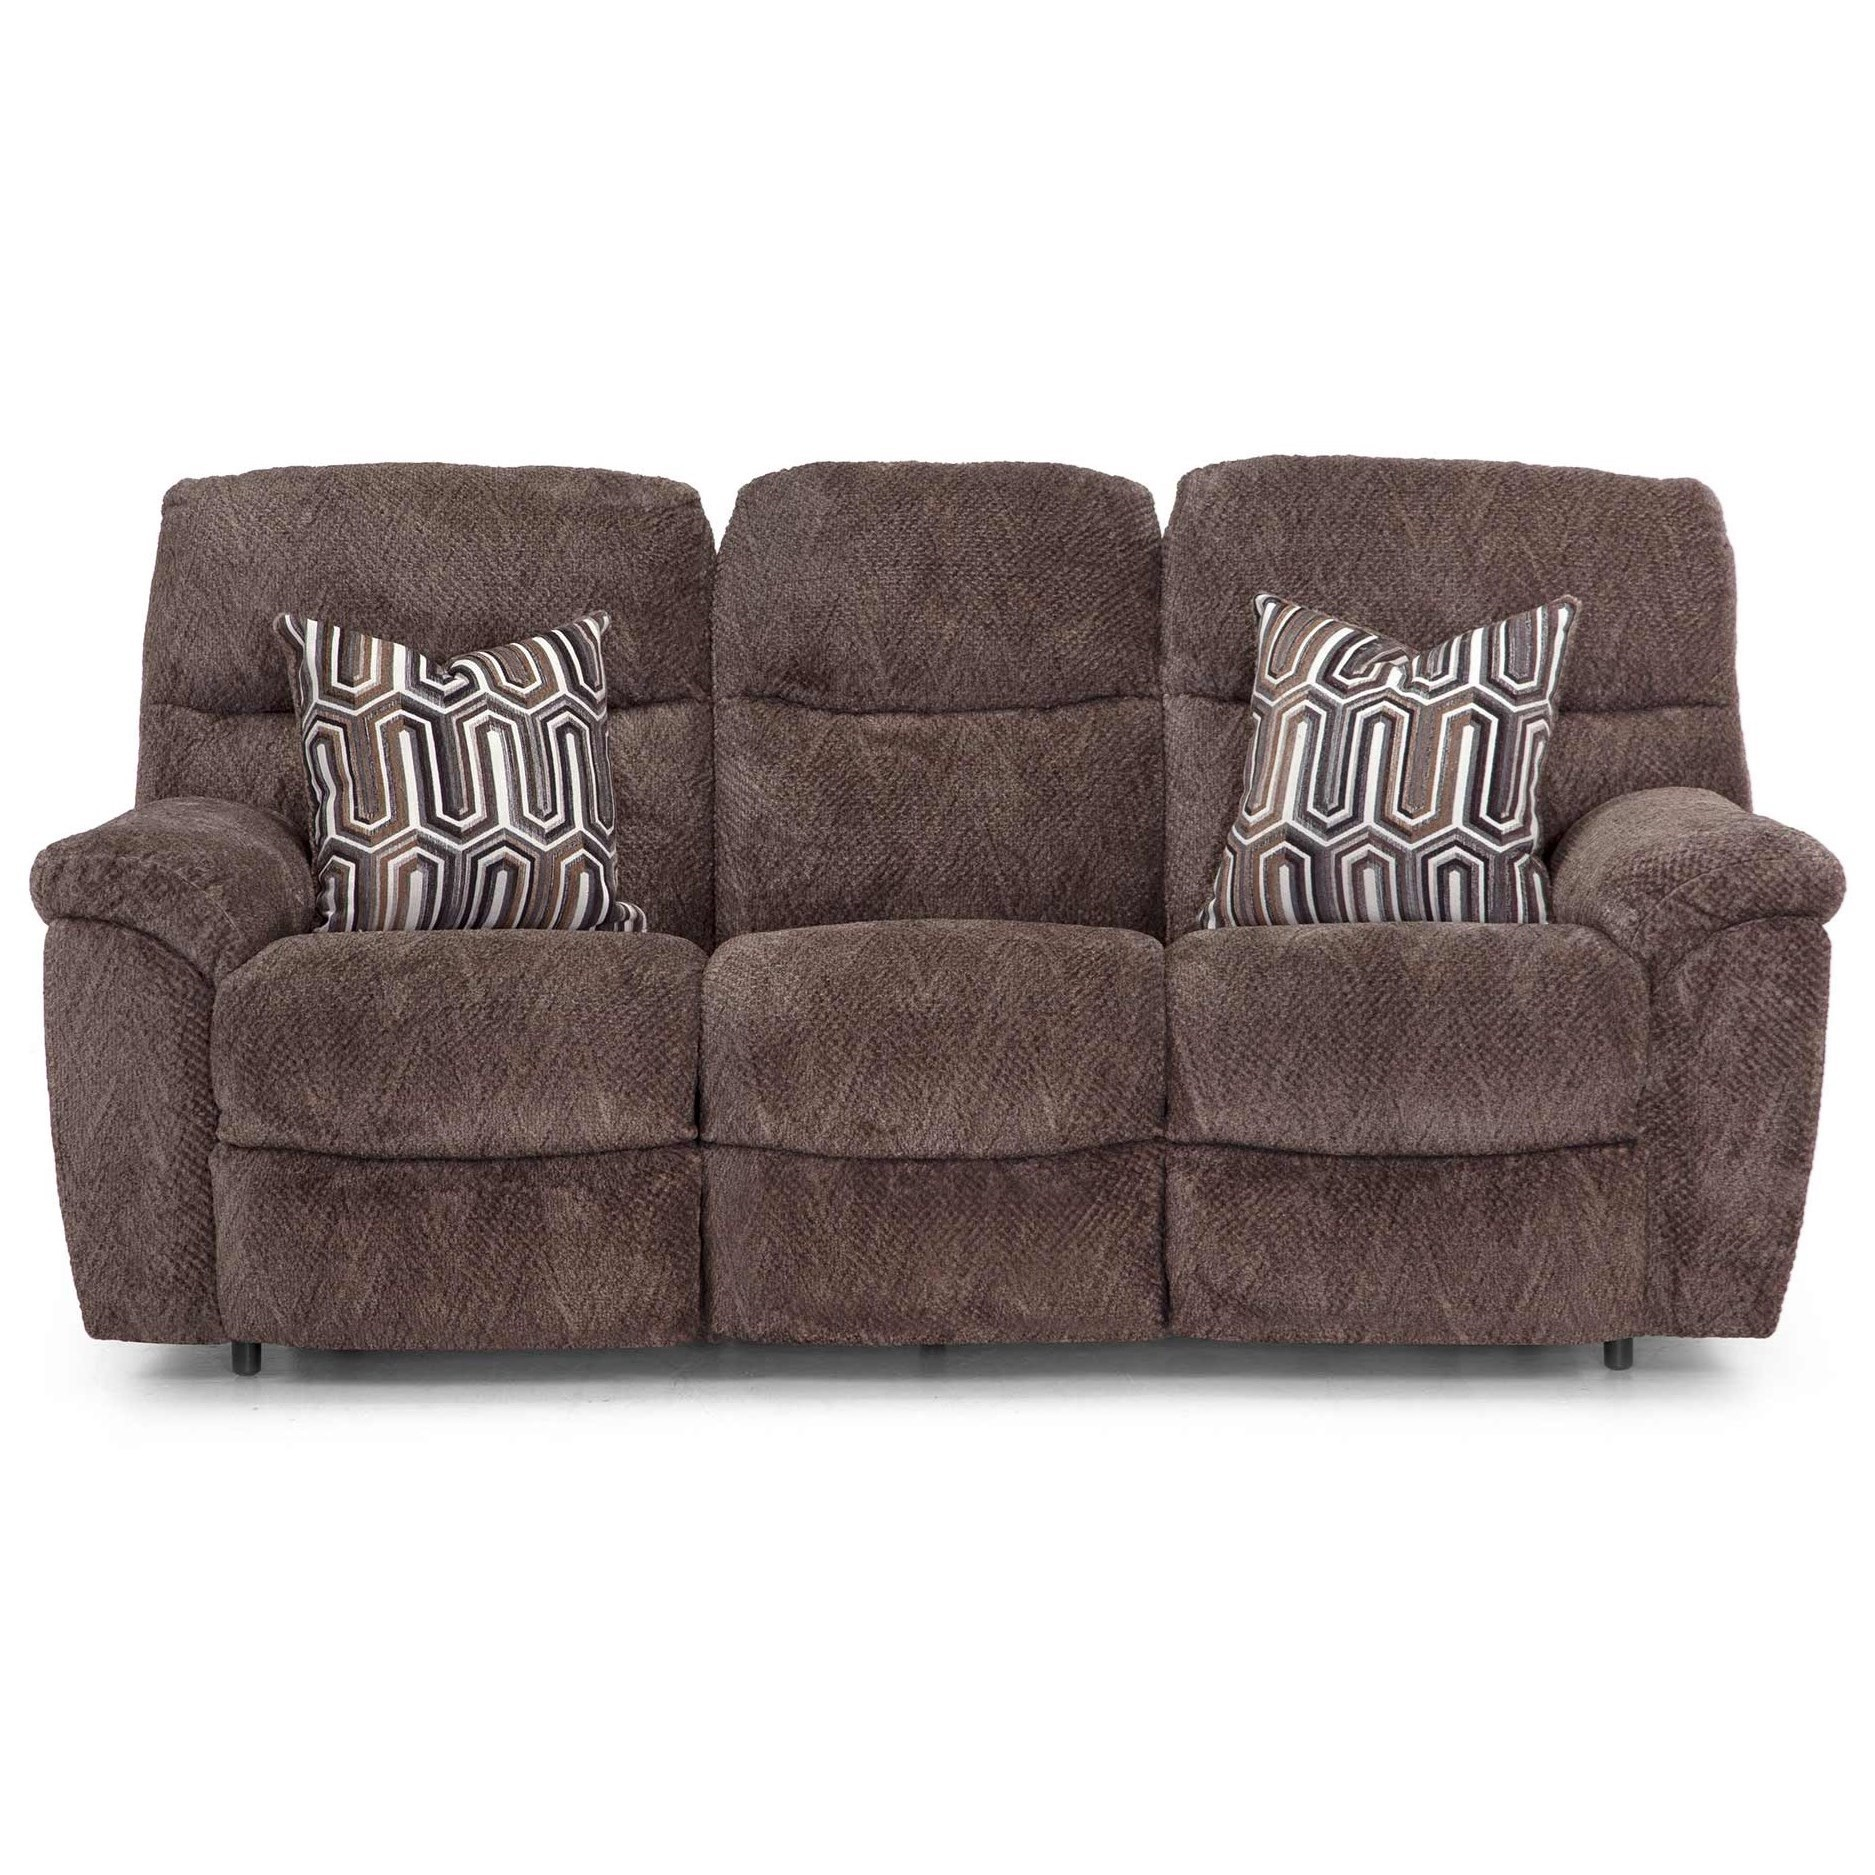 710 Power Reclining Sofa by Franklin at Turk Furniture